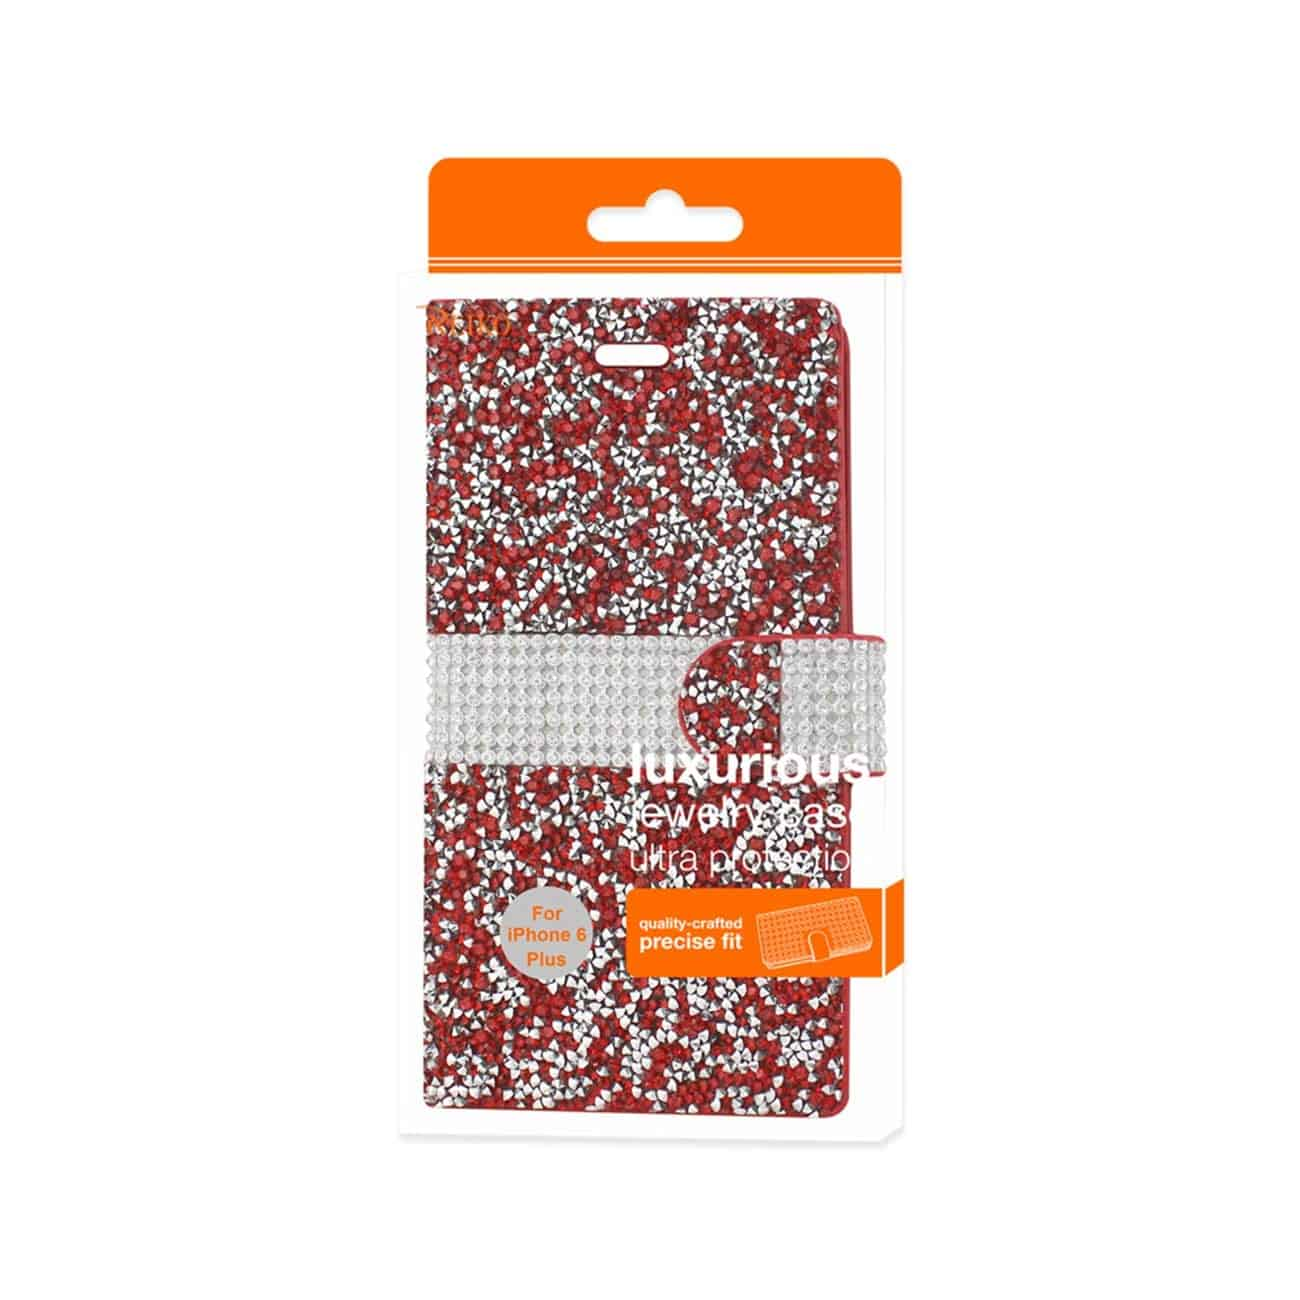 IPHONE 6 PLUS DIAMOND RHINESTONE WALLET CASE IN RED